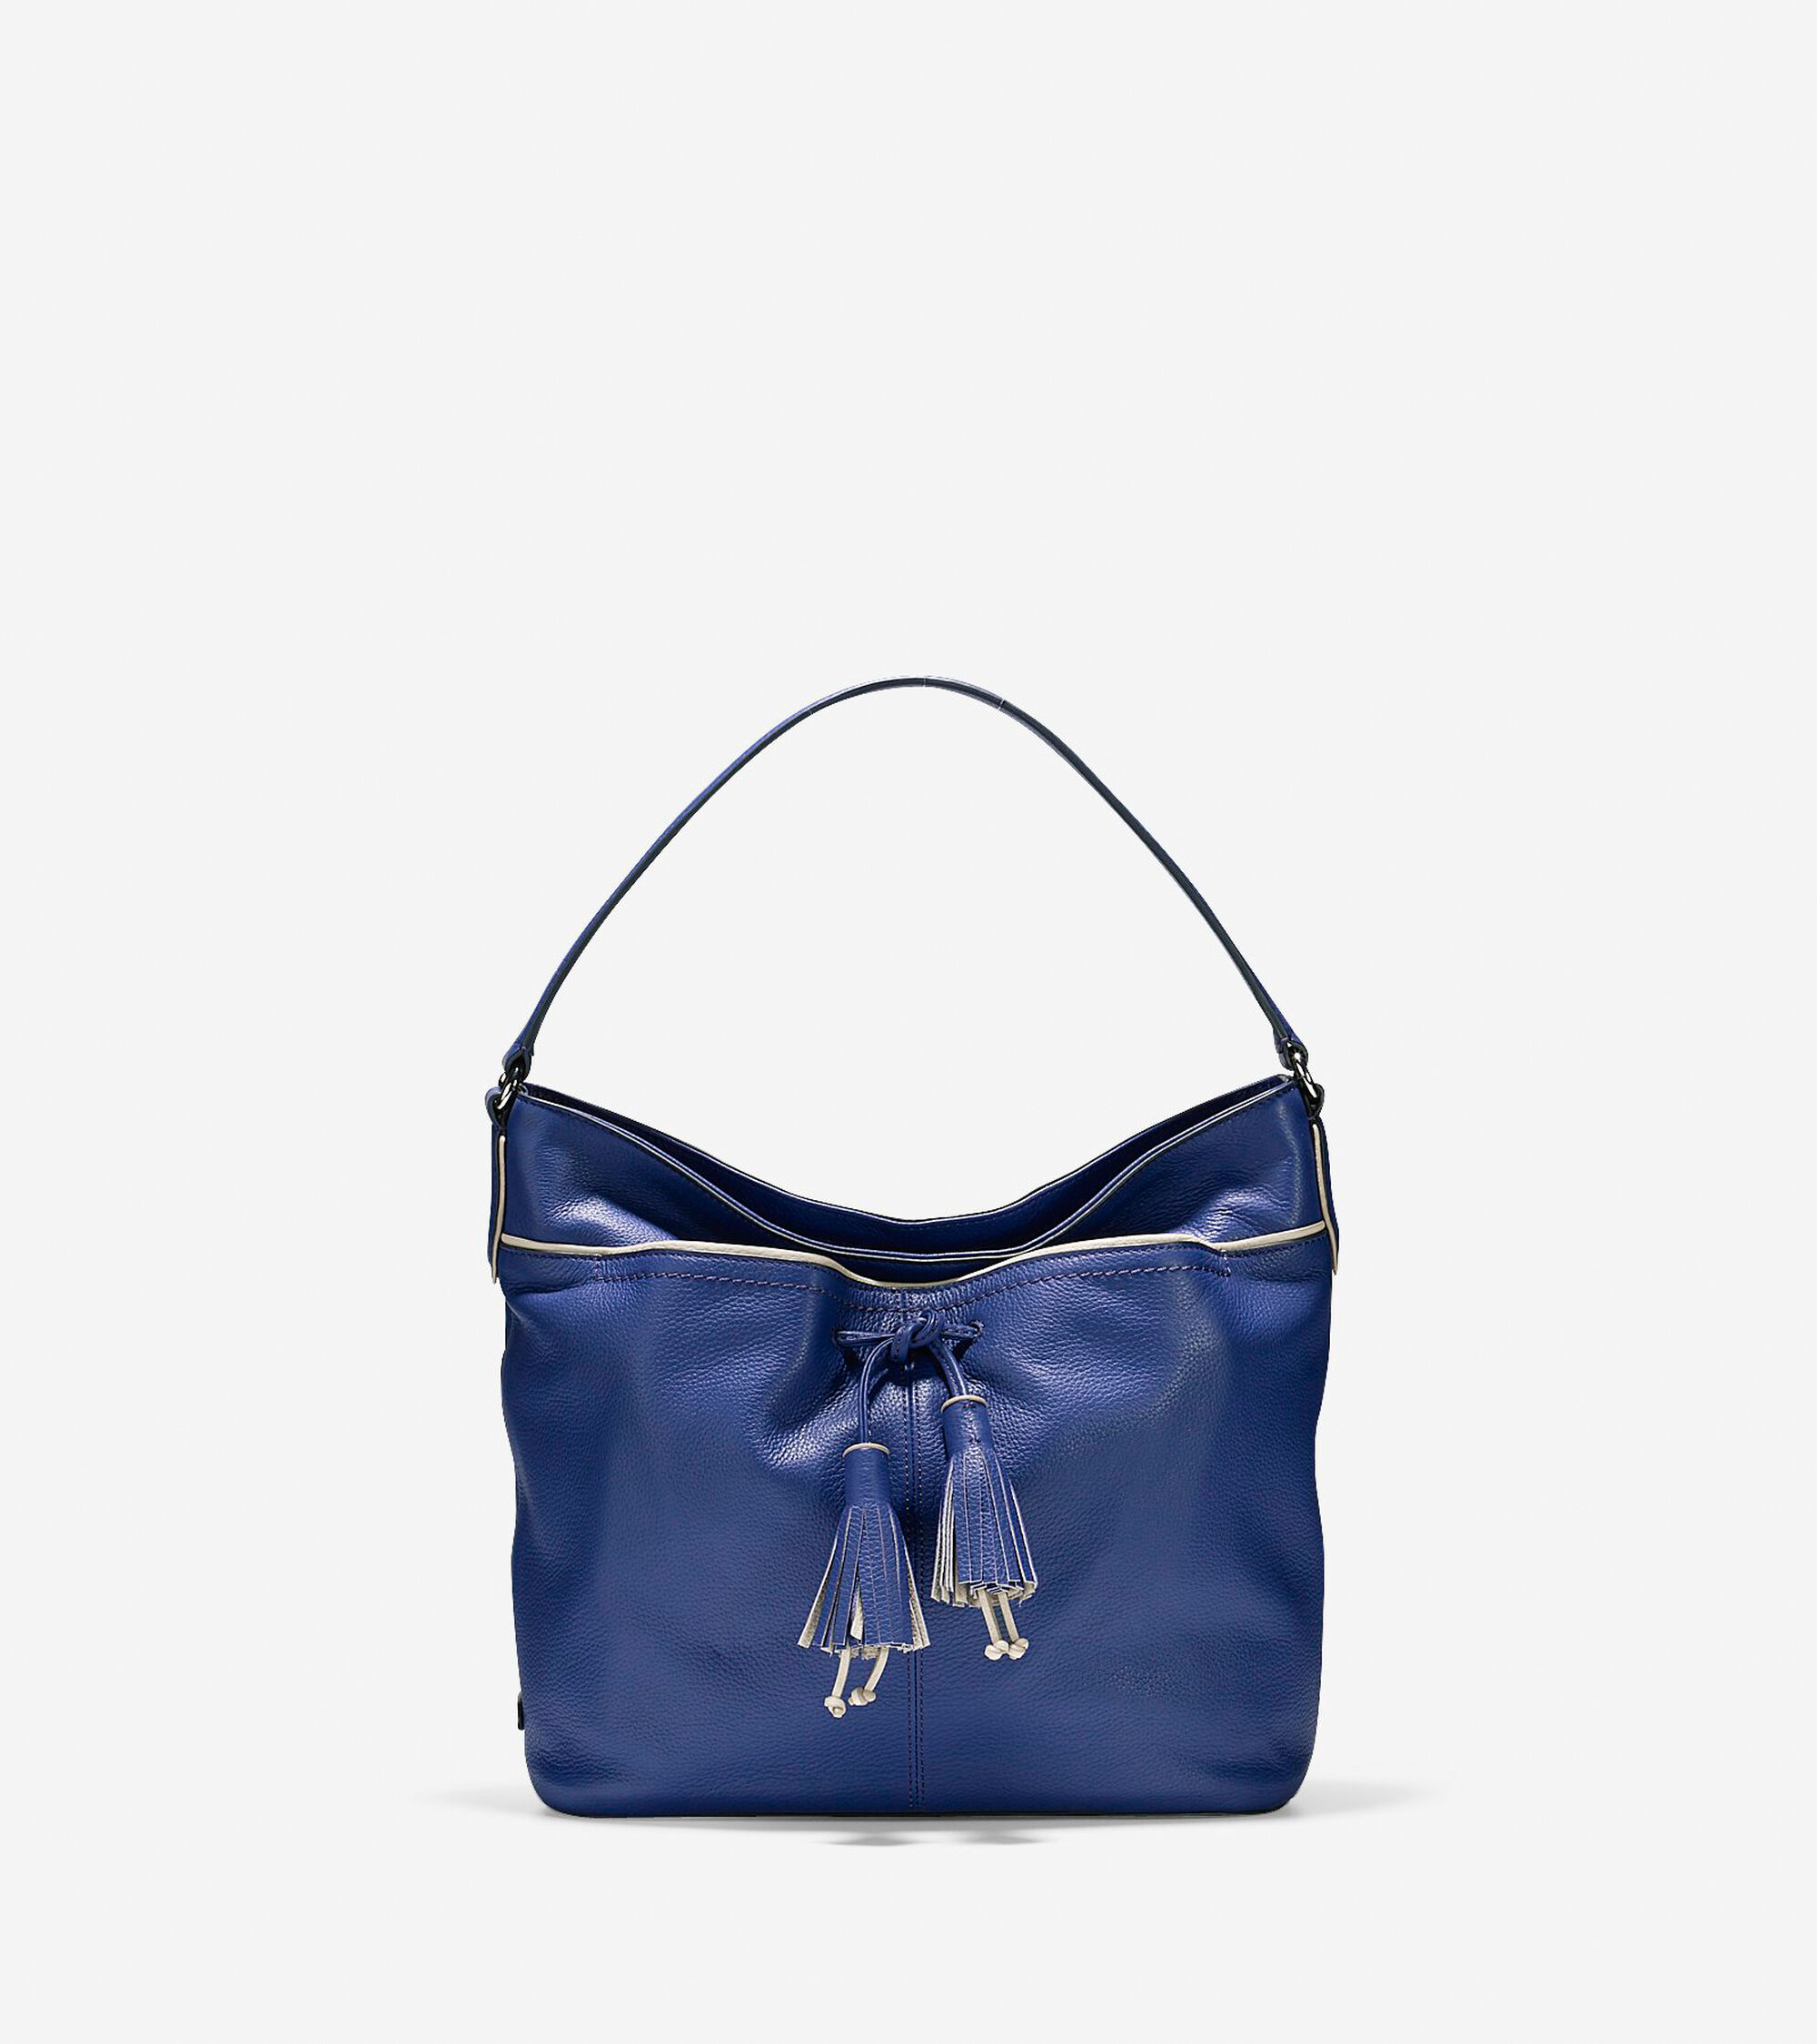 Handbags > Reiley Tassel Hobo